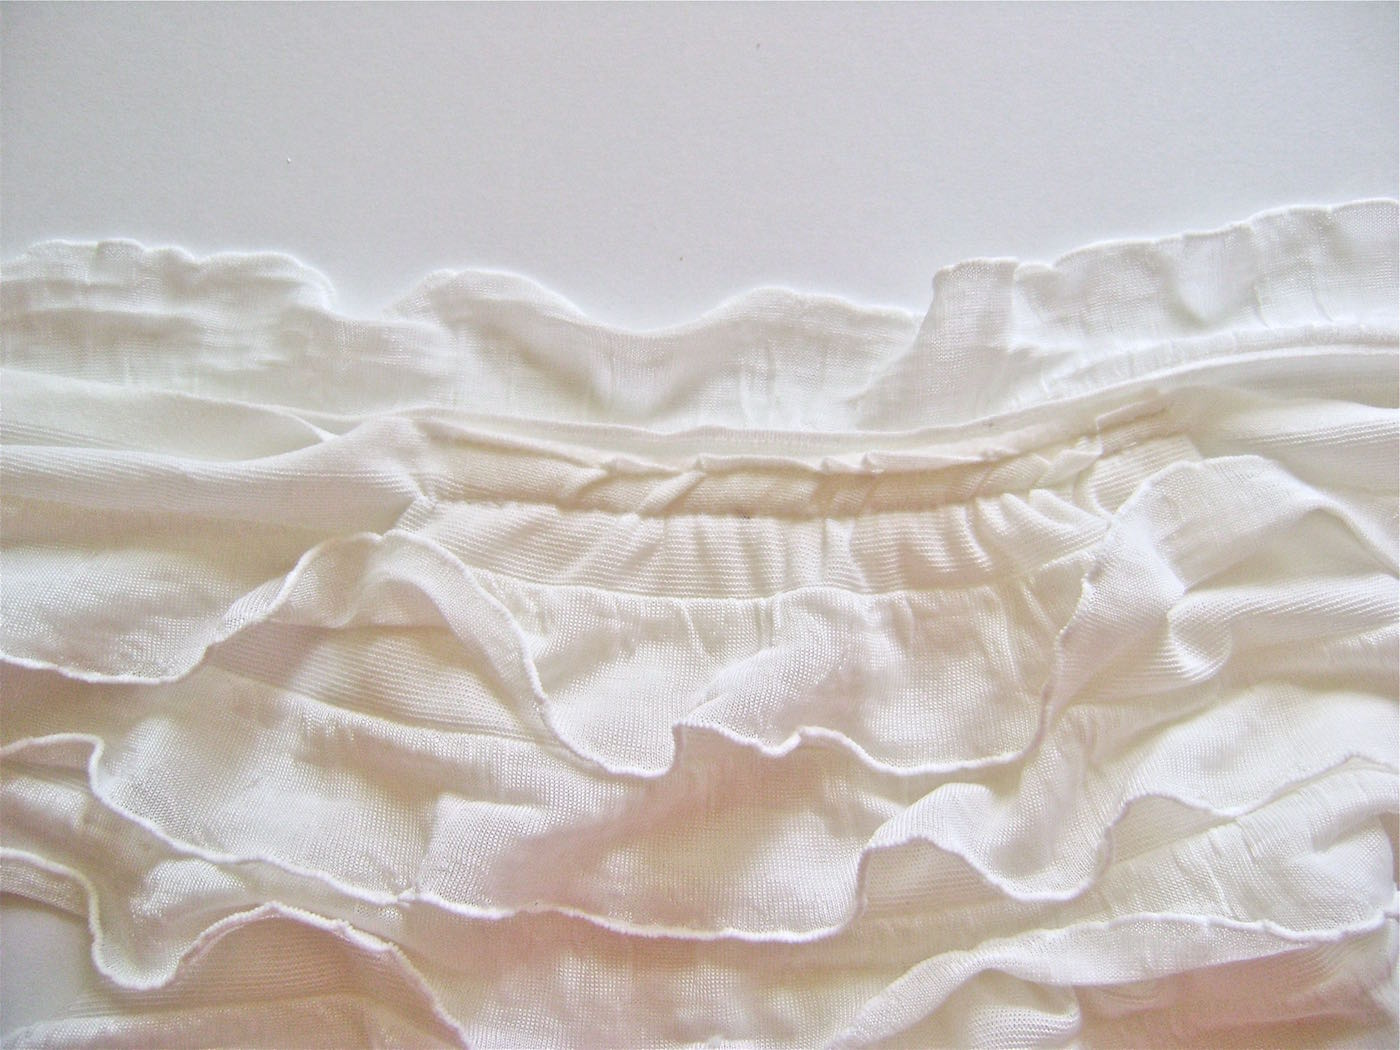 """step 7 - Cut one more strip of only one ruffle plus the margin, to measure 13"""" long. Gather it as you did the other ruffles. Attach it to the neck sewing the margin to the wrong side of the fleece. The ruffle creates a collar at the neck when flipped to the right side."""